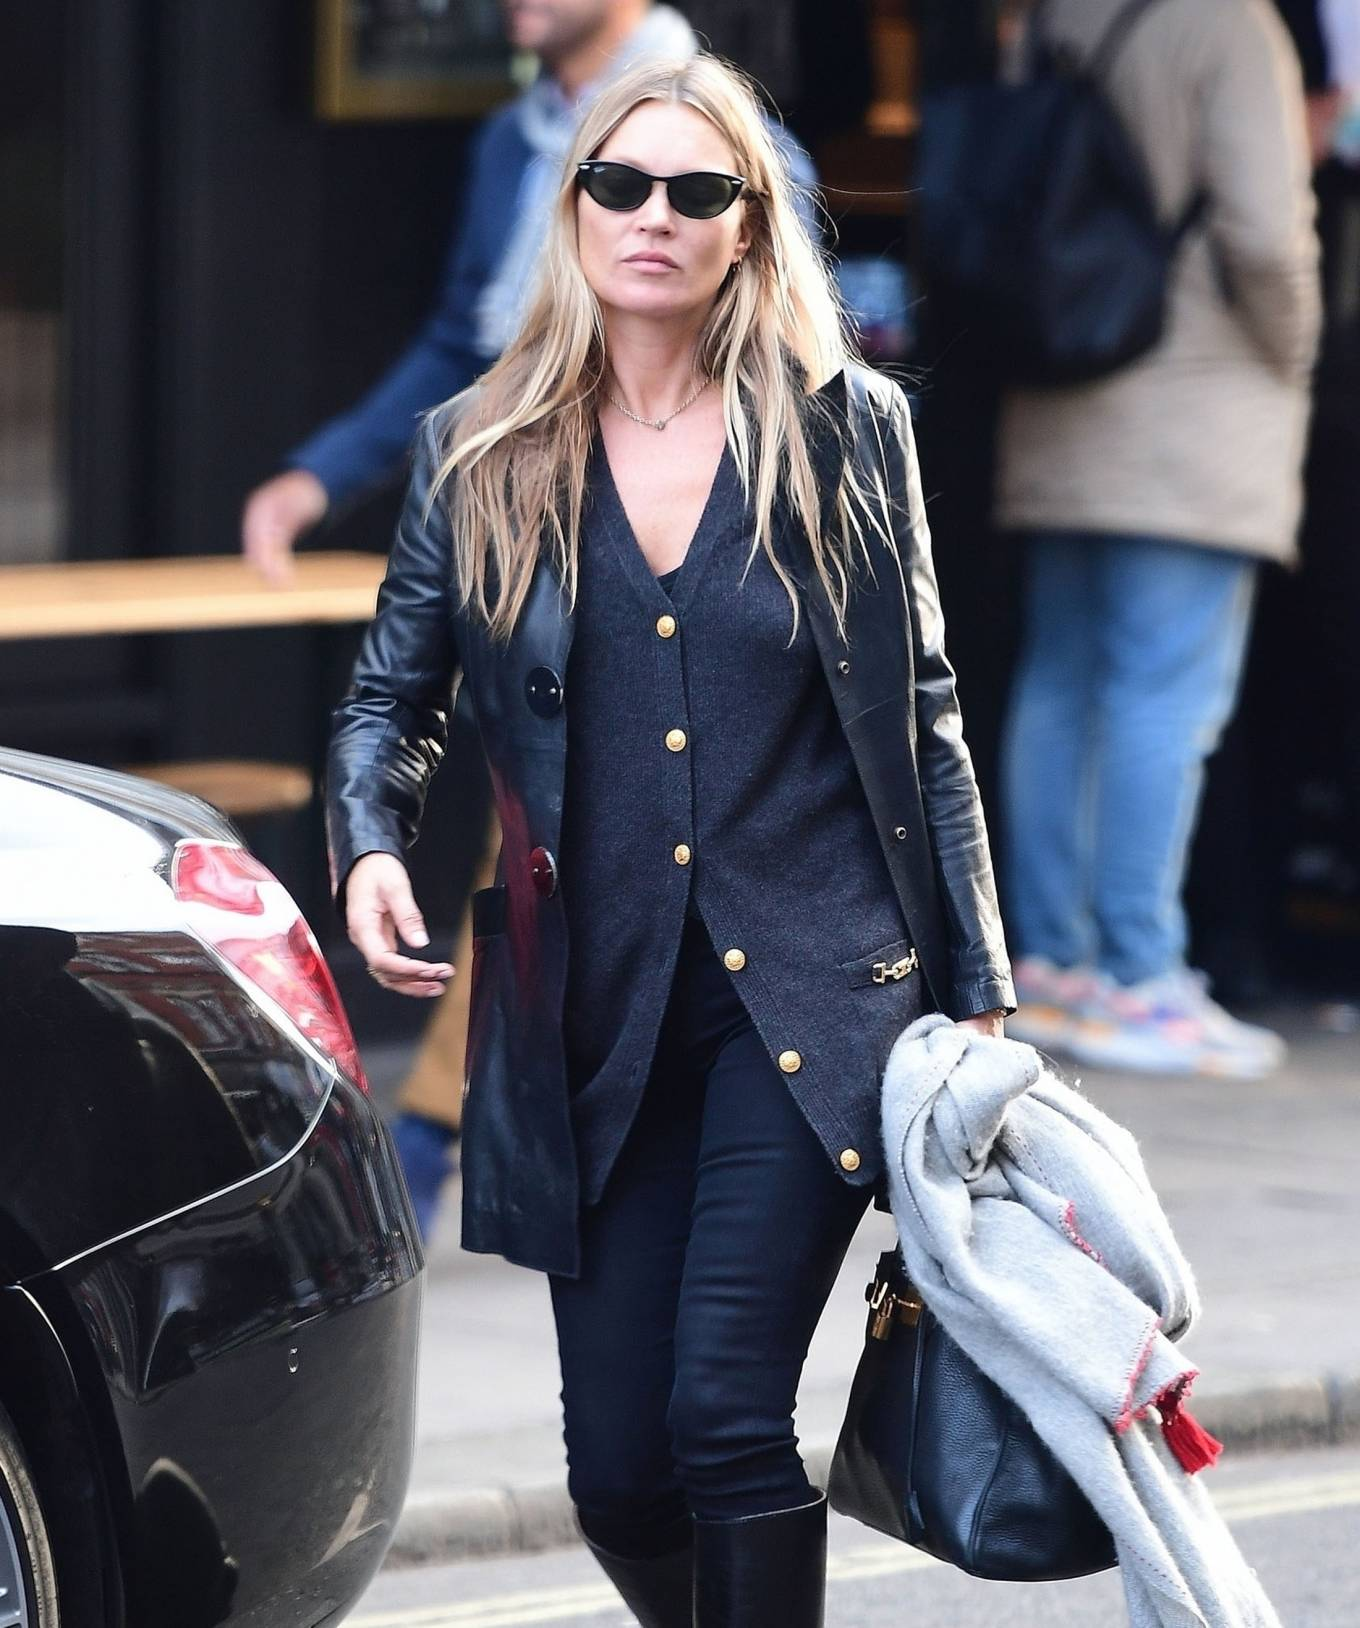 Kate Moss donning narrow black leather mid calf boots with high block heel